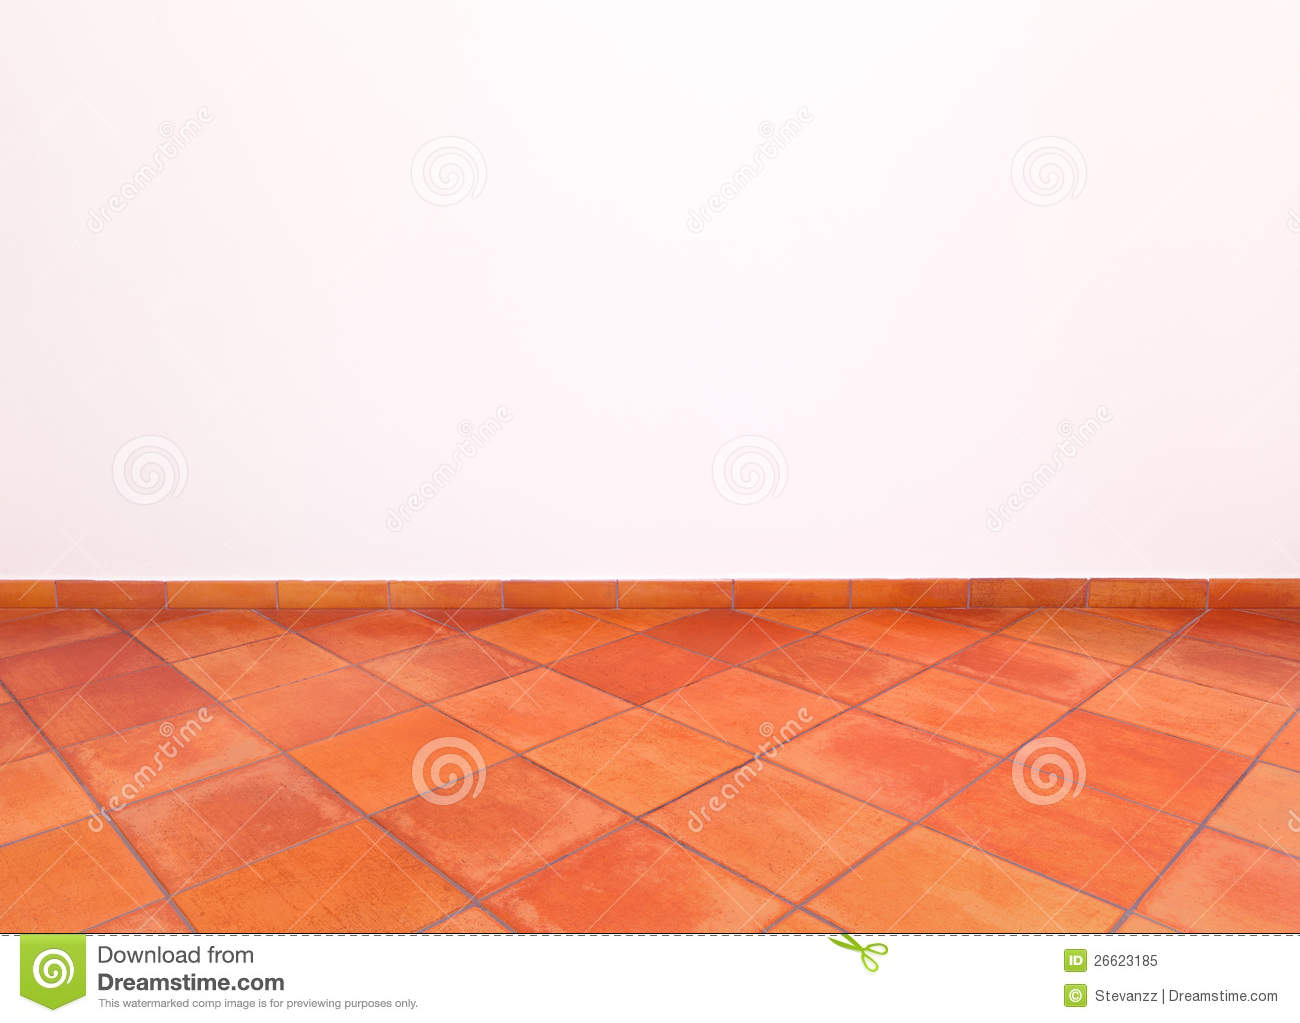 Tuscan Old Grunge Floor Red Tiles And Wall Stock Image